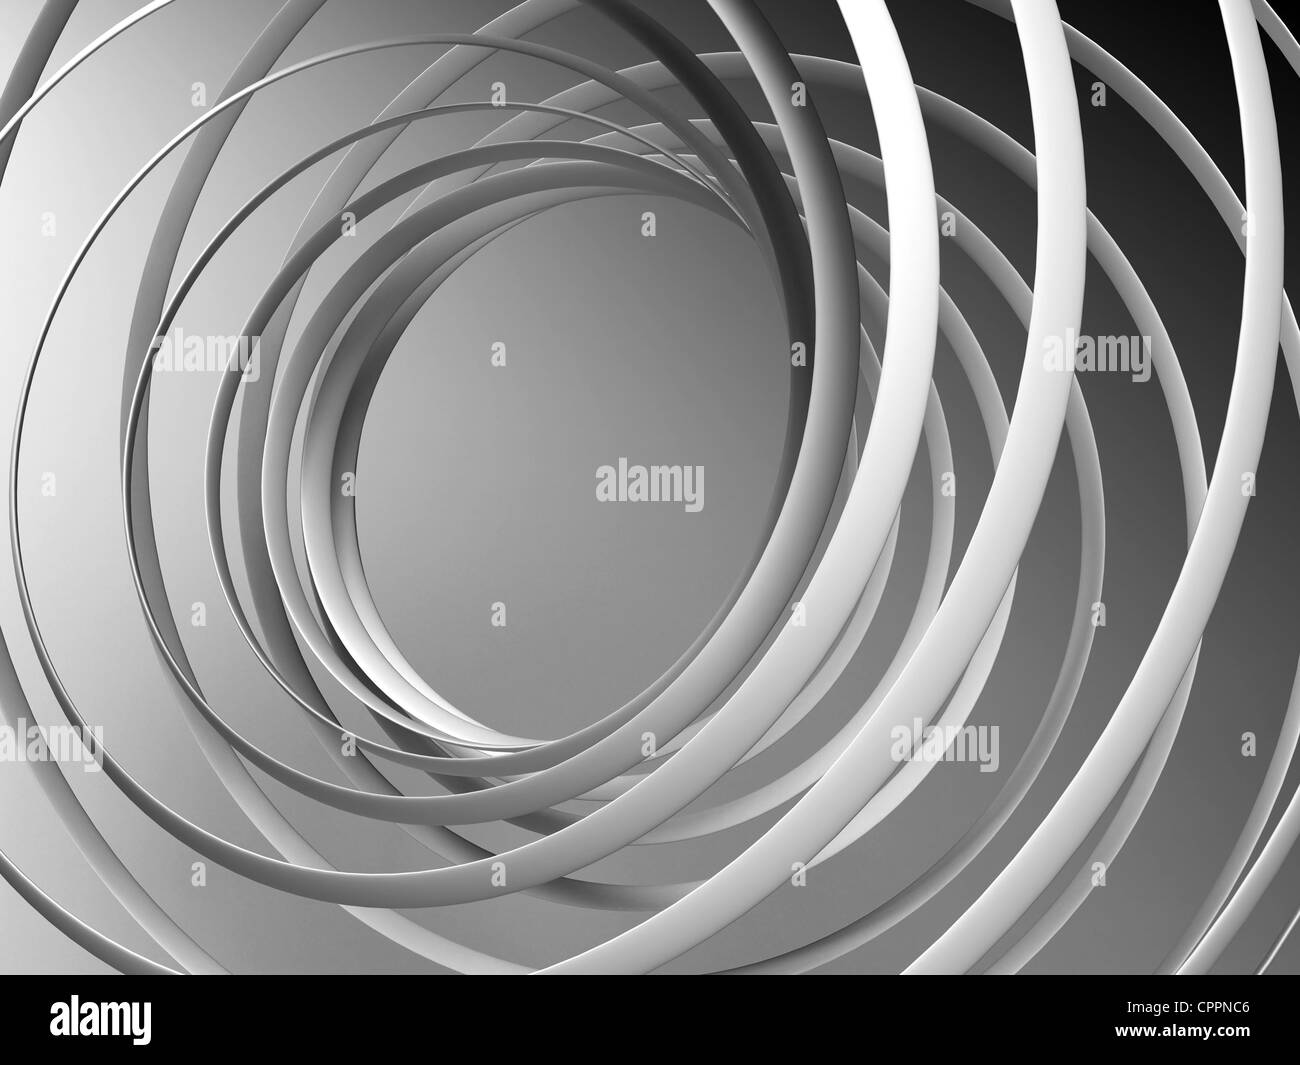 Monochrome abstract 3d spiral background - Stock Image